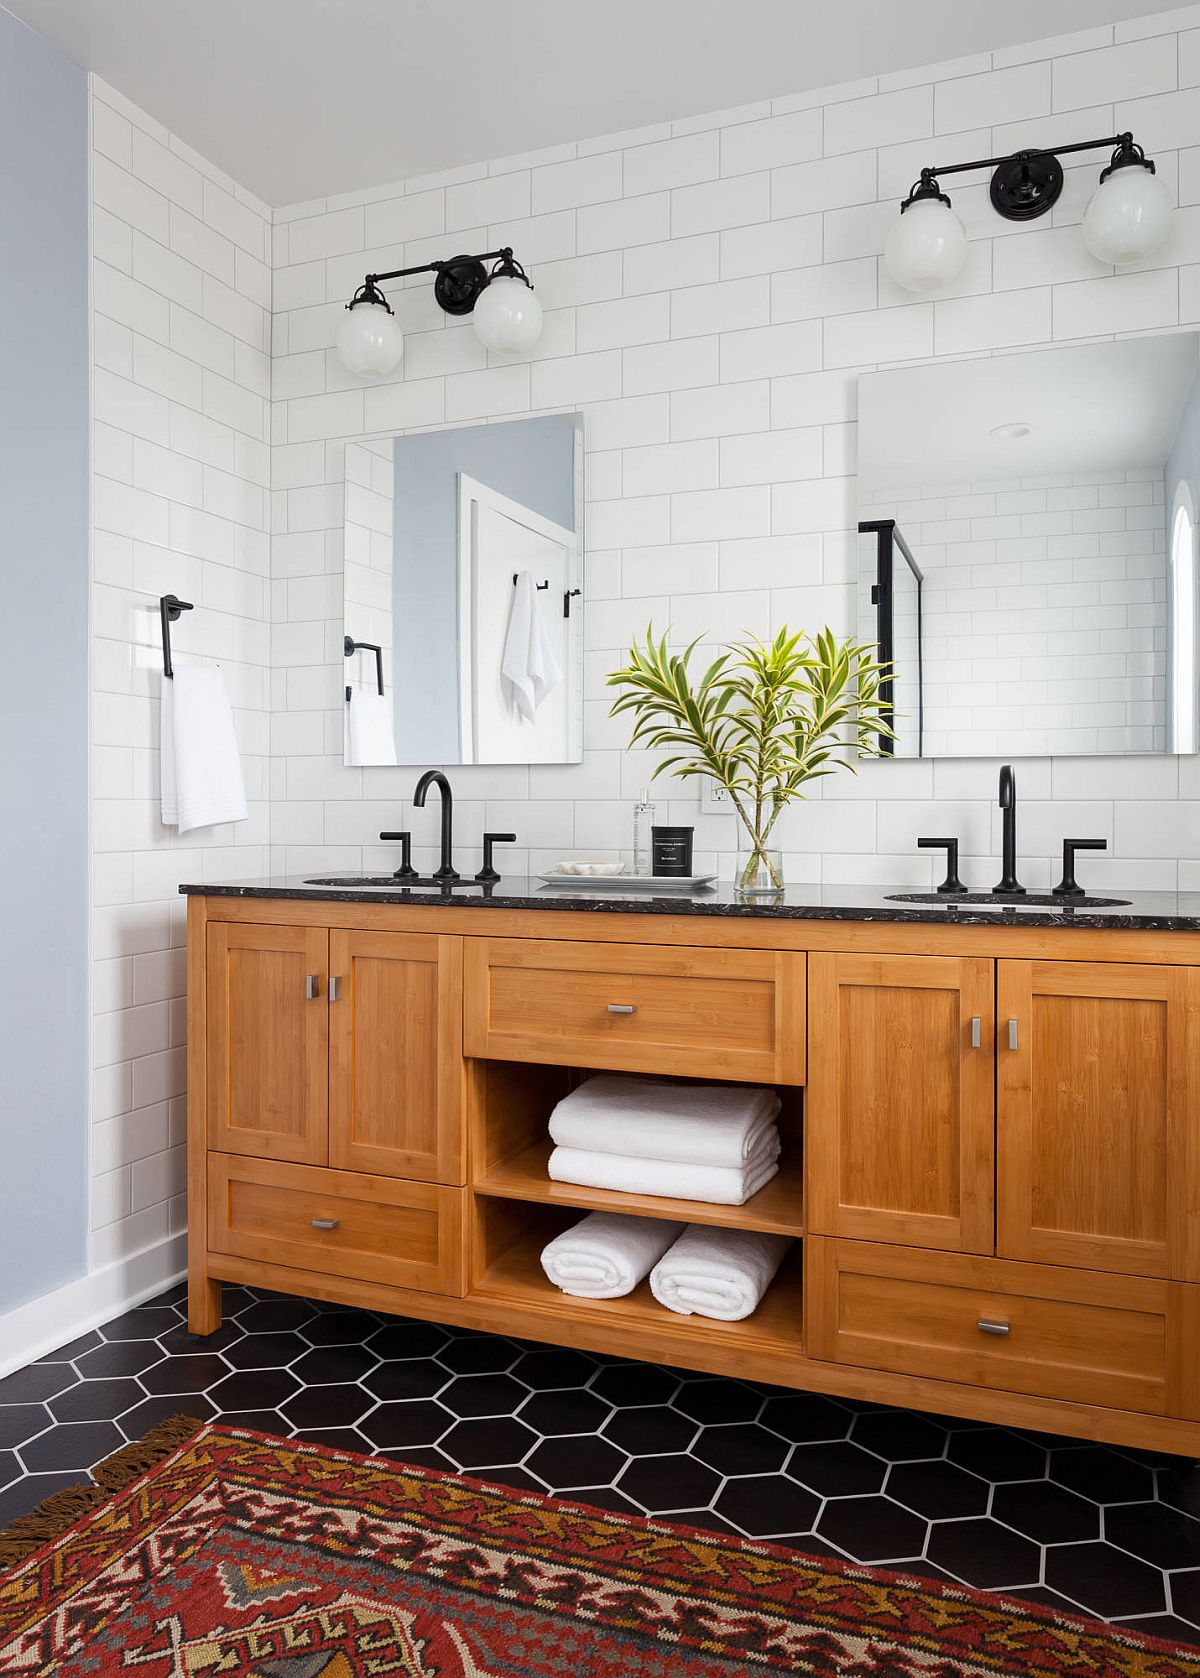 It is the floor that brings black to this black and white bathroom with a lovely wooden vanity